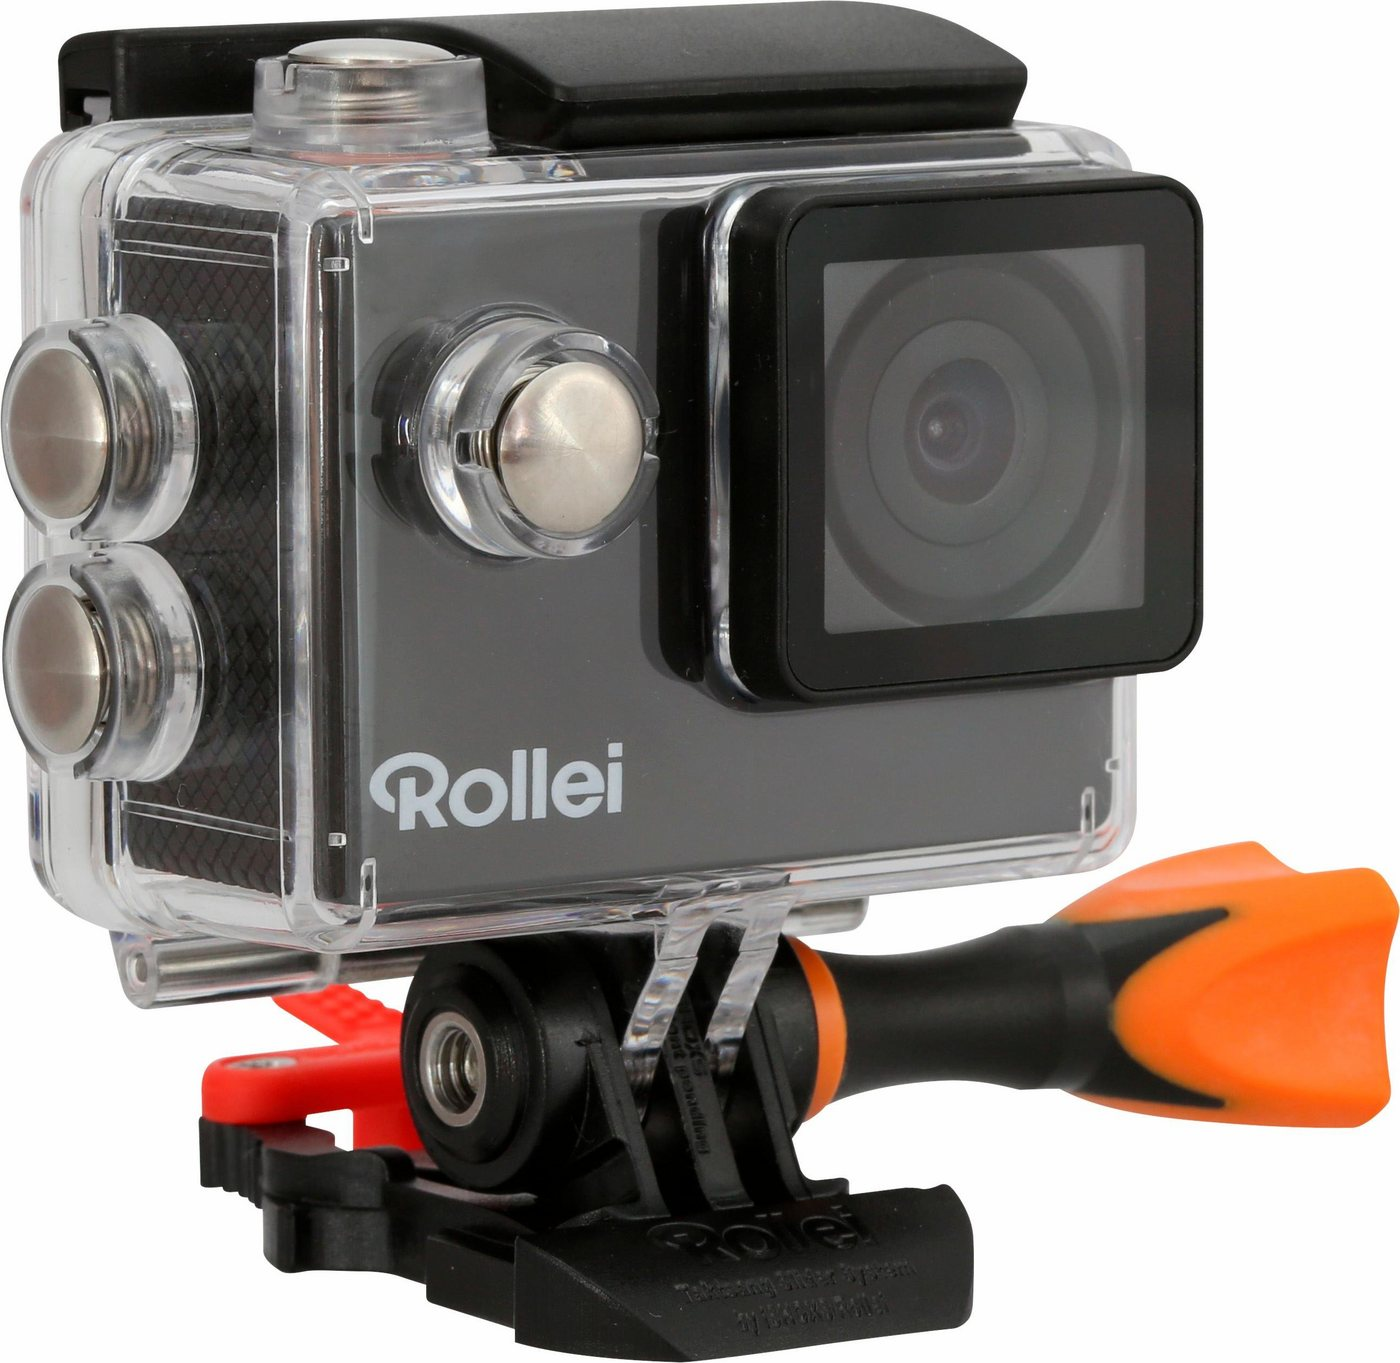 ROLLEI actioncam 425 Set 4K (Ultra HD) actioncam WLAN